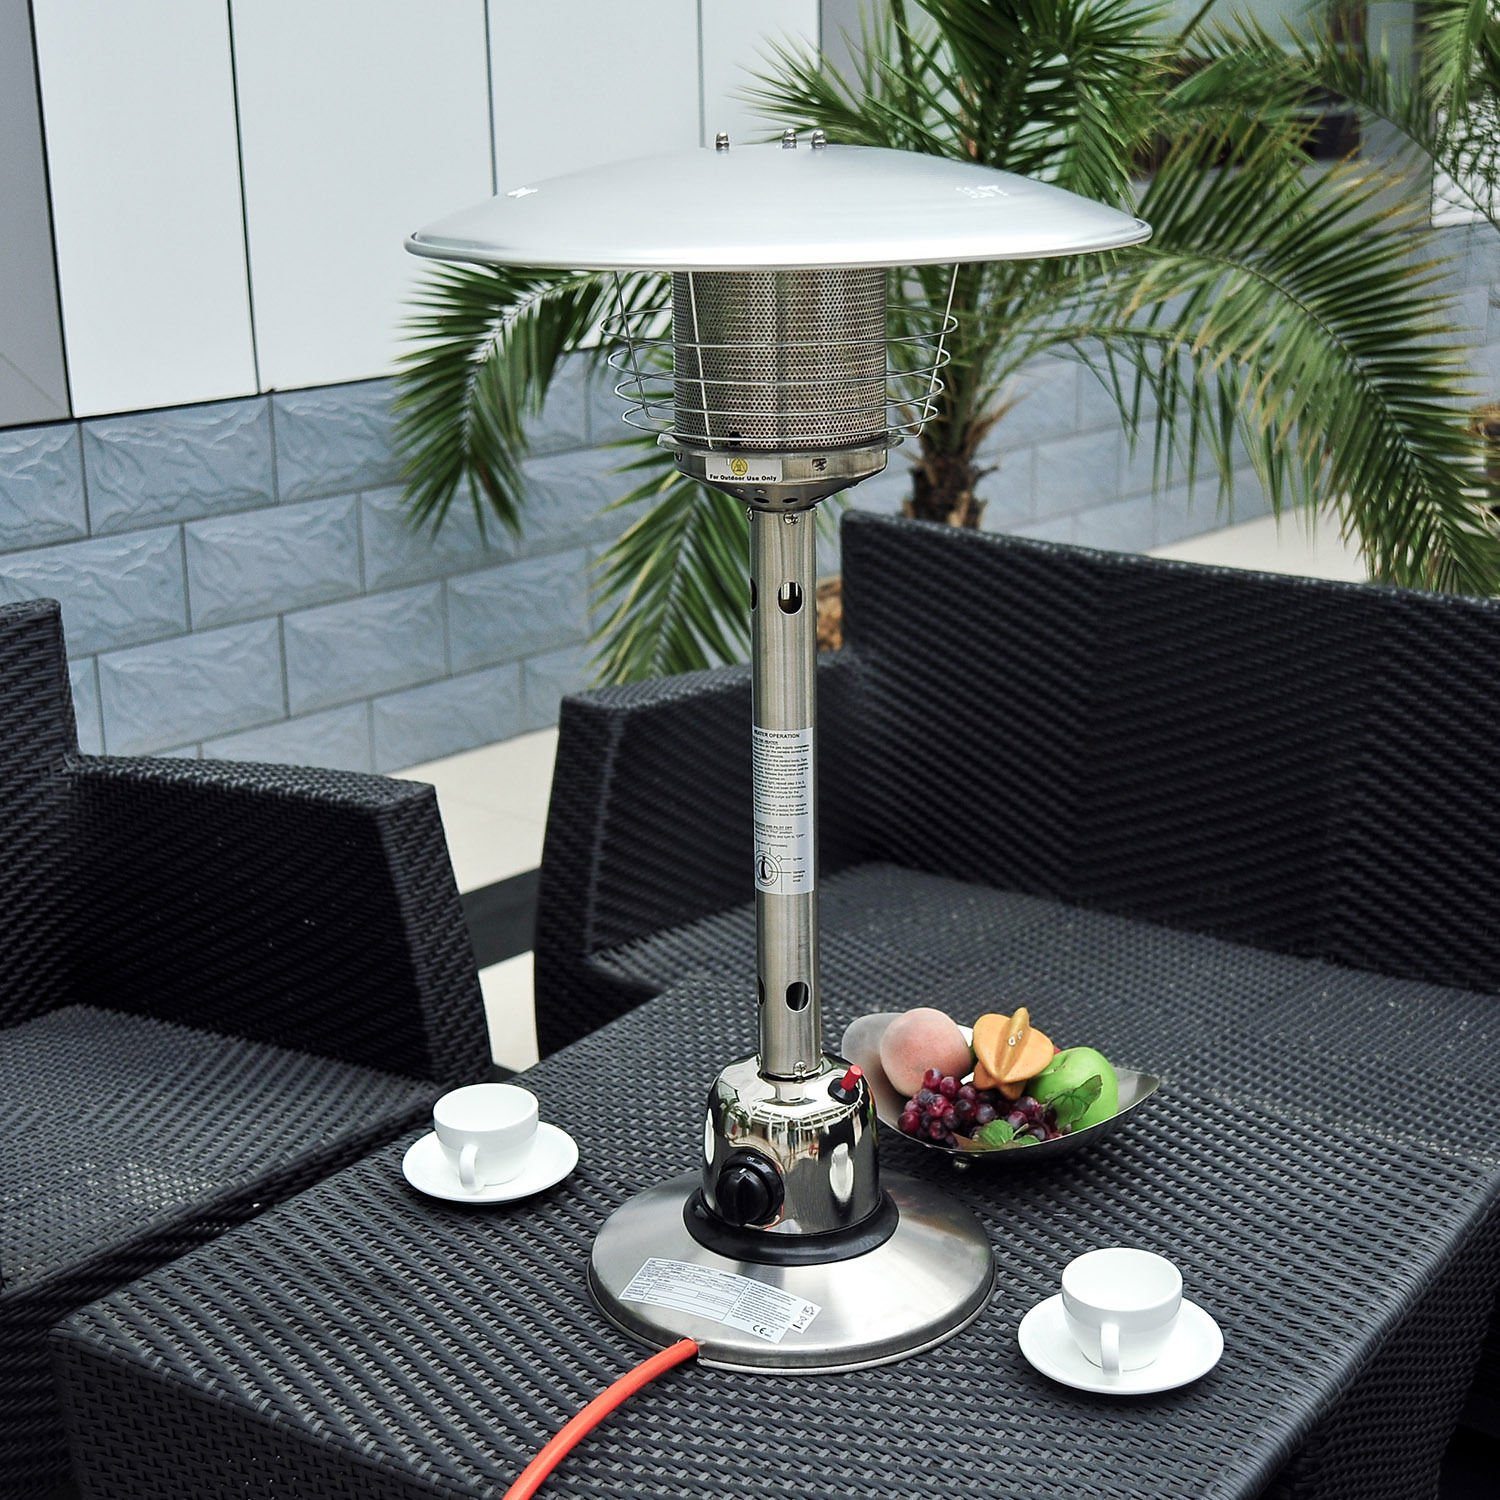 homcom 4 kw stainless steel table top gas patio heater silver rh amazon co uk Bedroom Furniture Home Goods Store